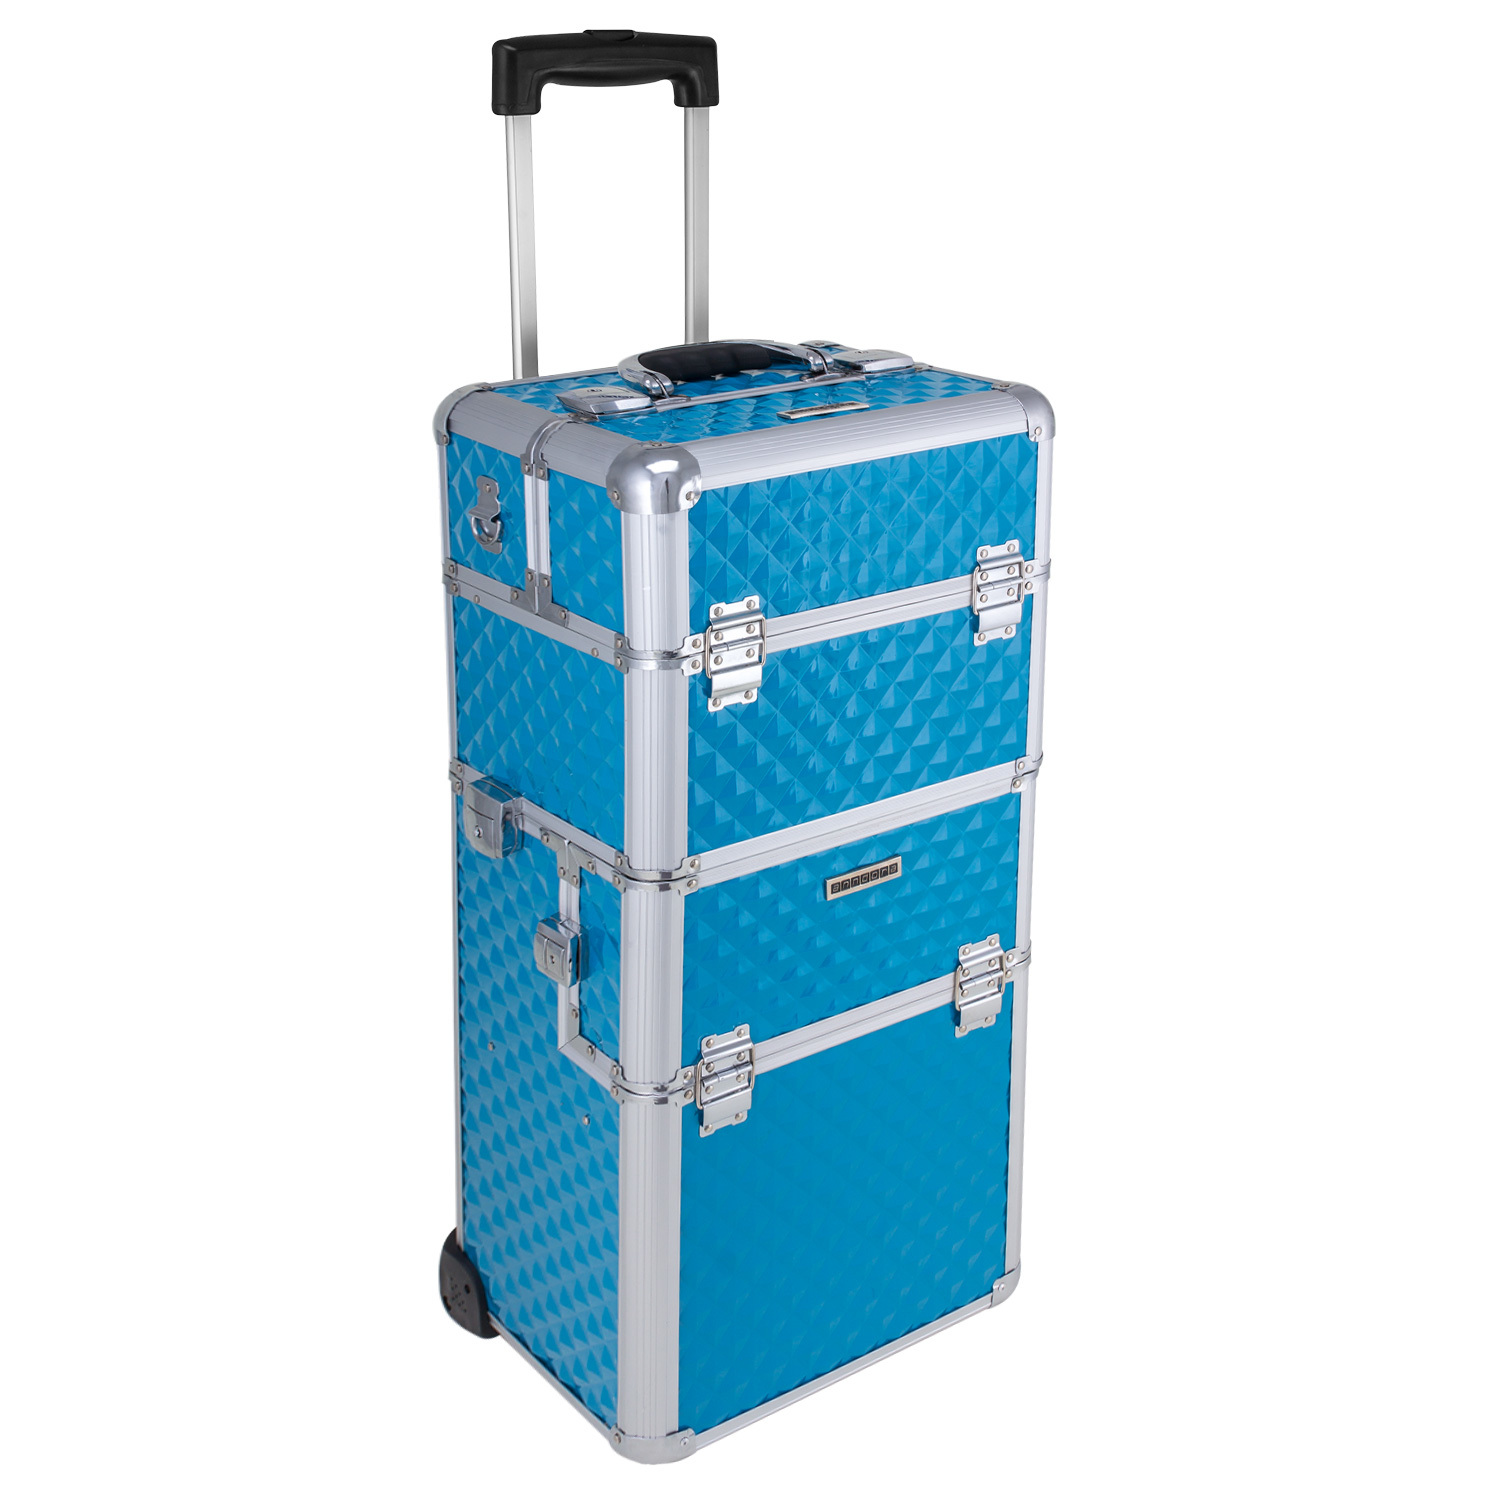 Make-up Koffer Trolley 2 Räder Werkzeugtrolley Friseurkoffer Make-up Make-up Taschen & Koffer Tool Beauty Case